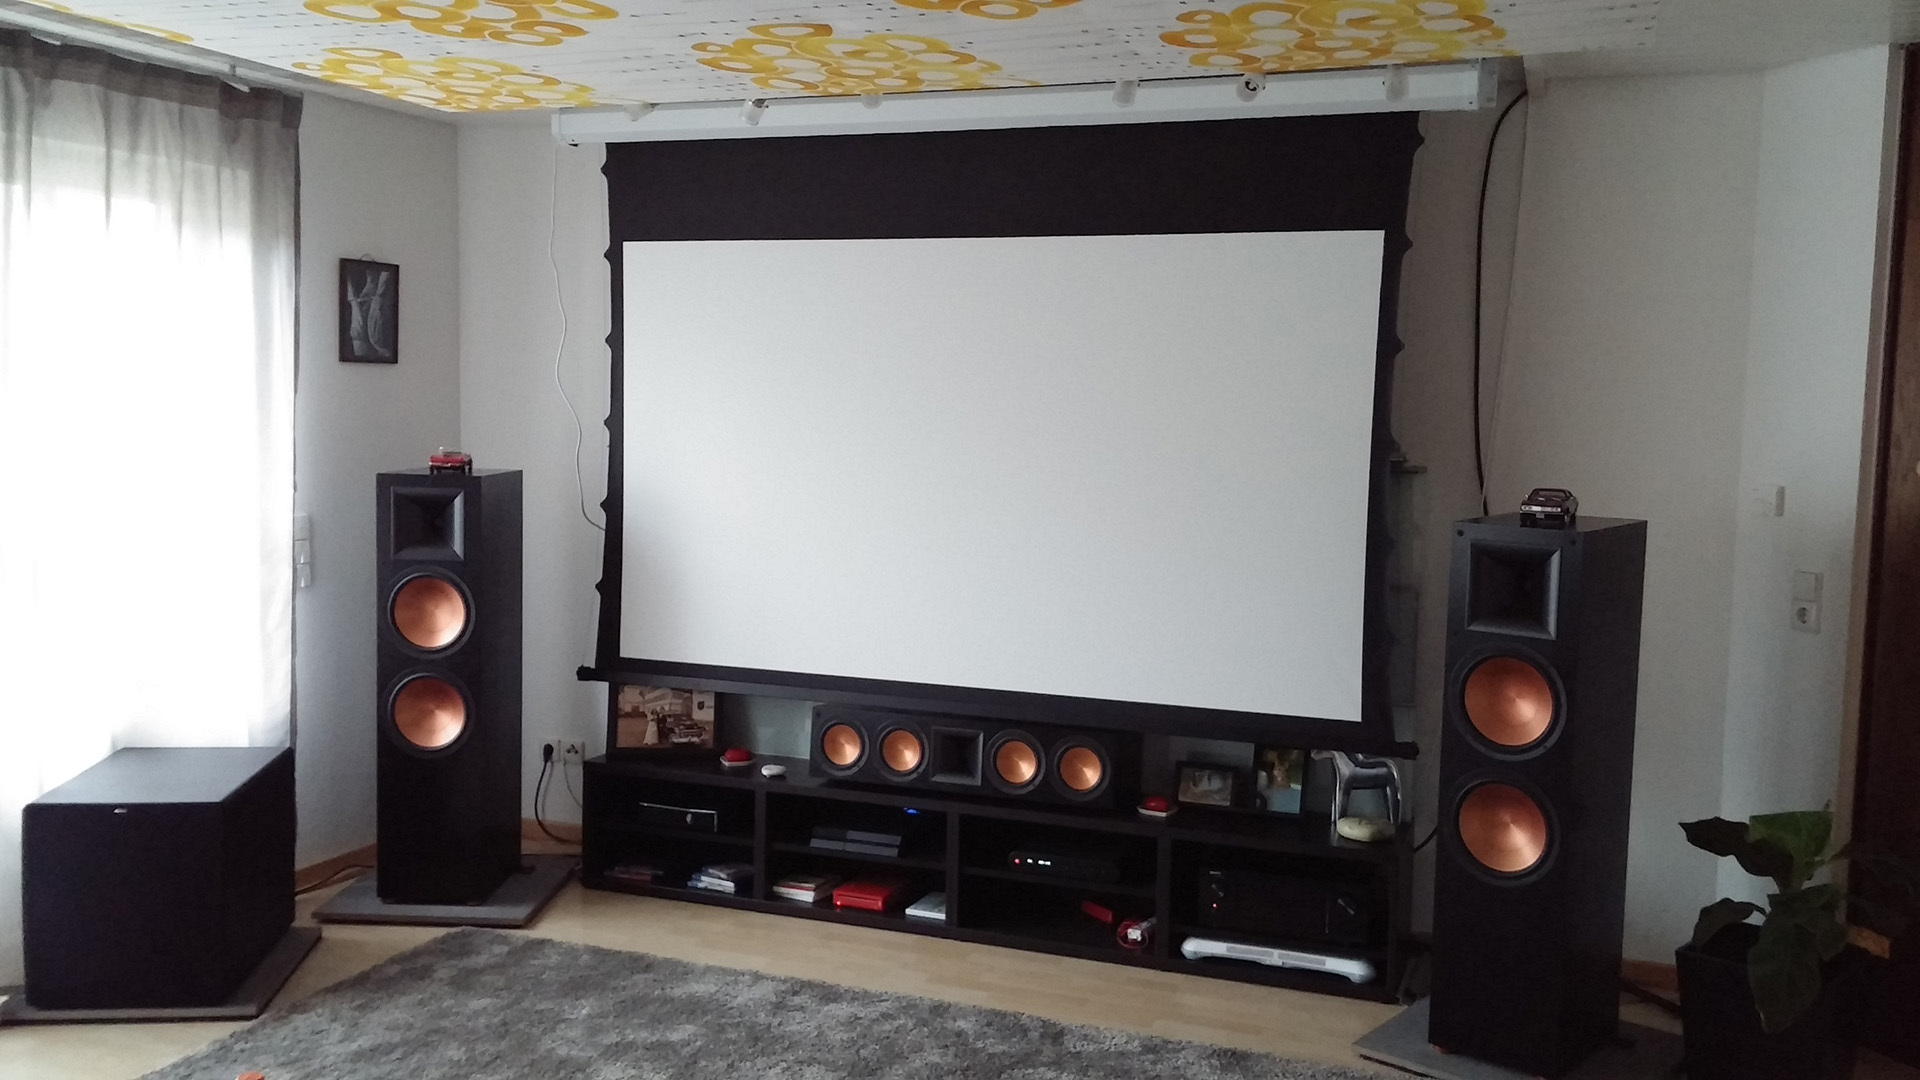 heimkino evolution benq bluesbrothers evolution heimkino klipsch surround hifi. Black Bedroom Furniture Sets. Home Design Ideas